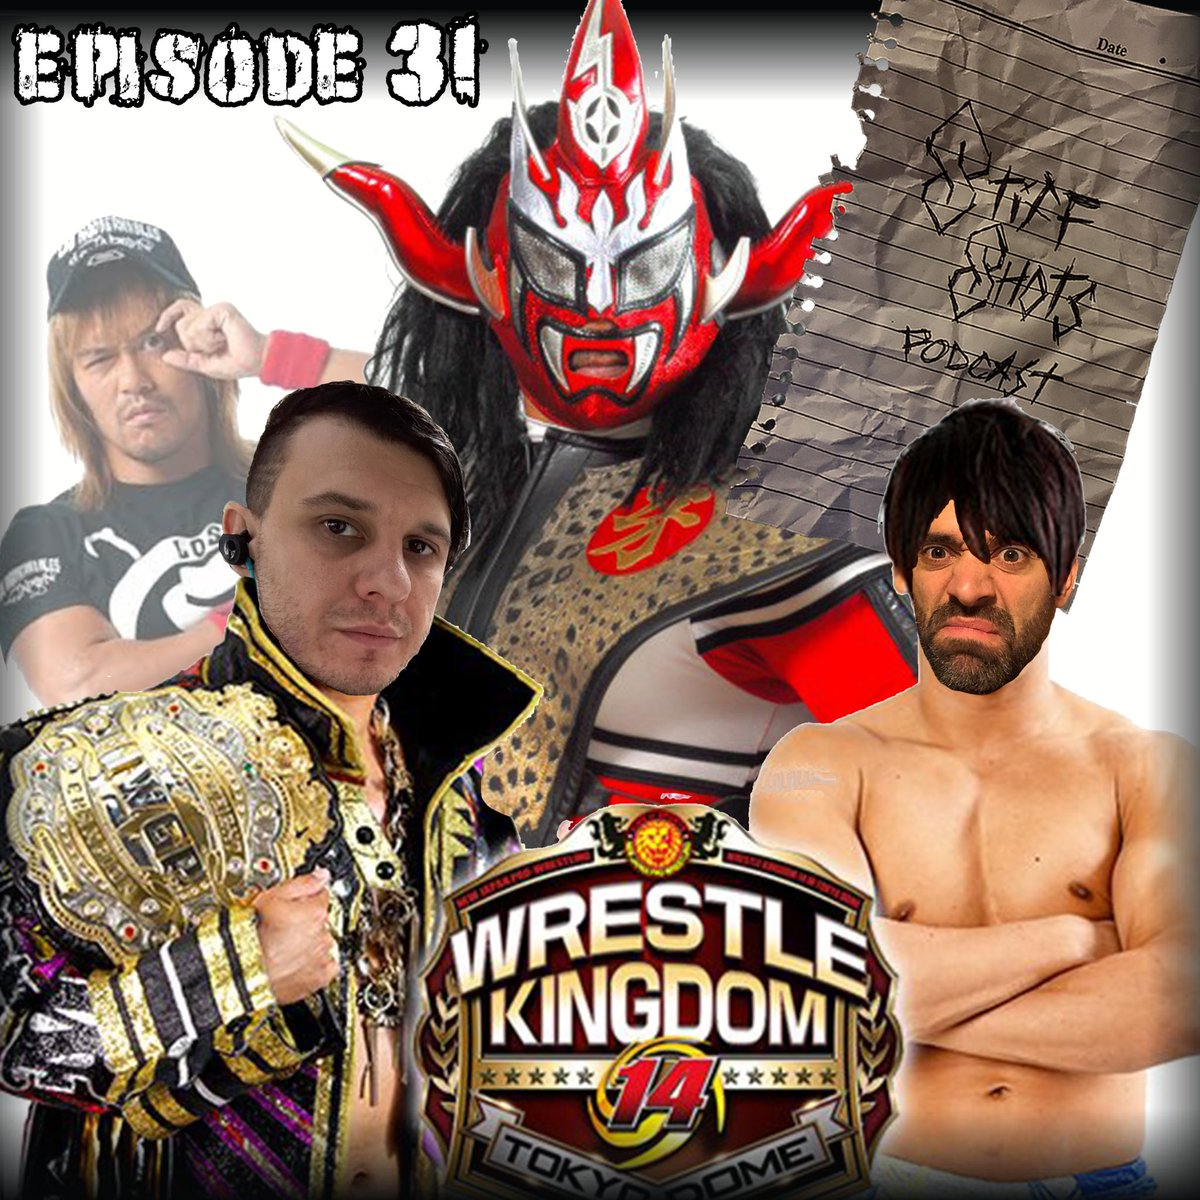 2020 stone cold stunny Wrestle Kingdom 14 was nothing but YEN. We discuss this cool occurrence in detail and start the decade off with some sick rapping. Stream on every platform that rocks